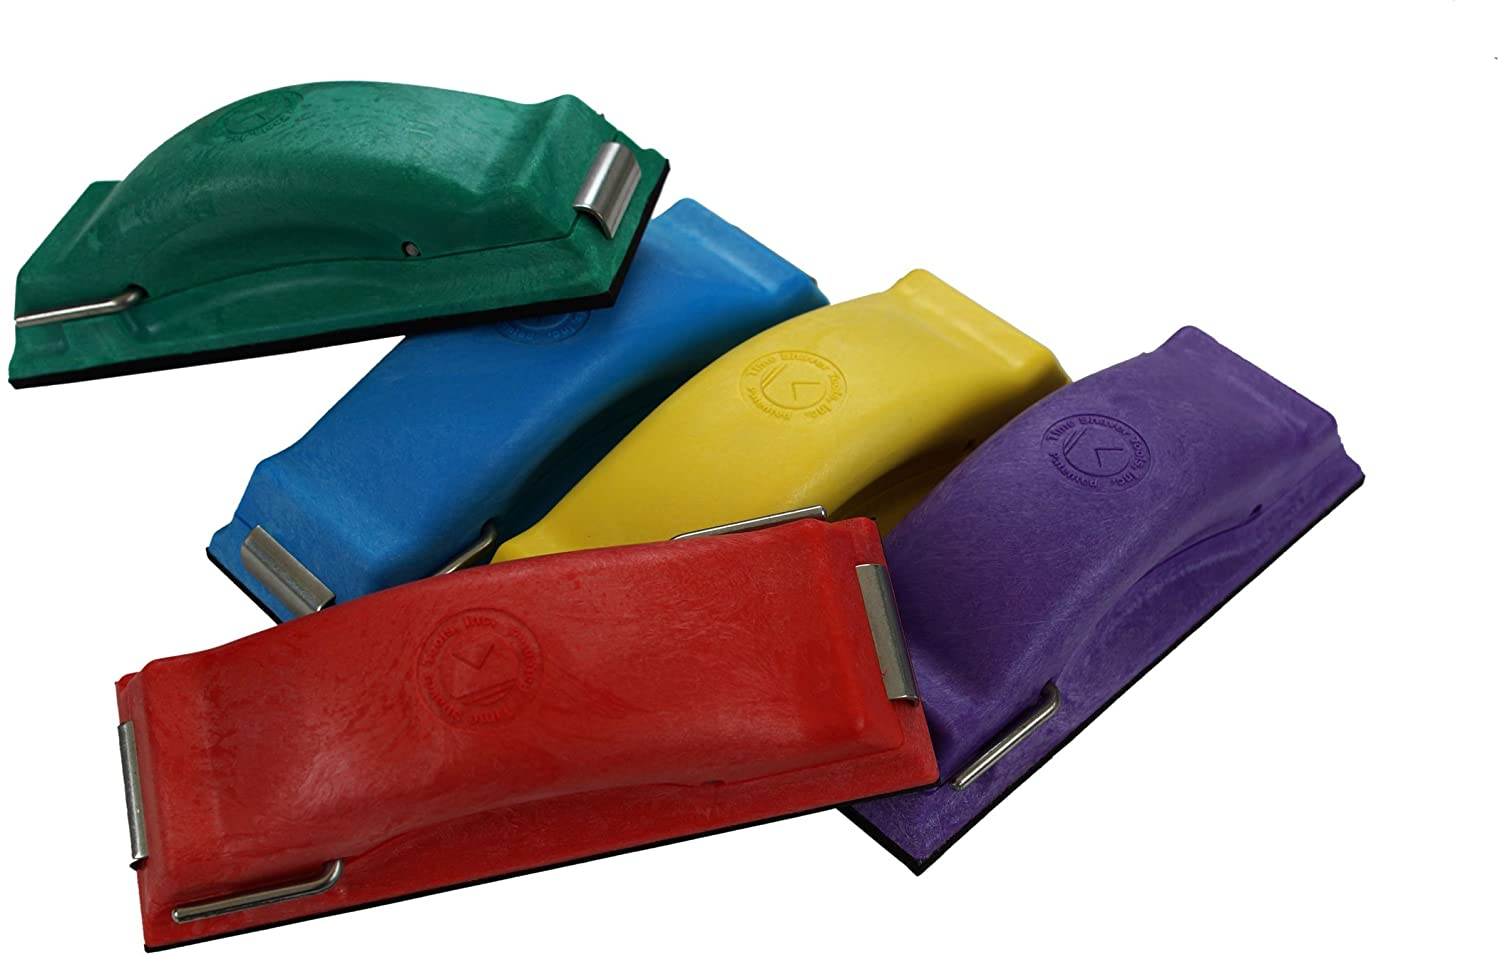 Time Shaver Tools Preppin' Weapon Ergonomic Sanding Block, for Wet and Dry Sanding. Easy to Load, Plain Paper Sander. Complete Set of 5 Color Coded Hand Sanders in Yellow, Blue, Green, Purple and Red.